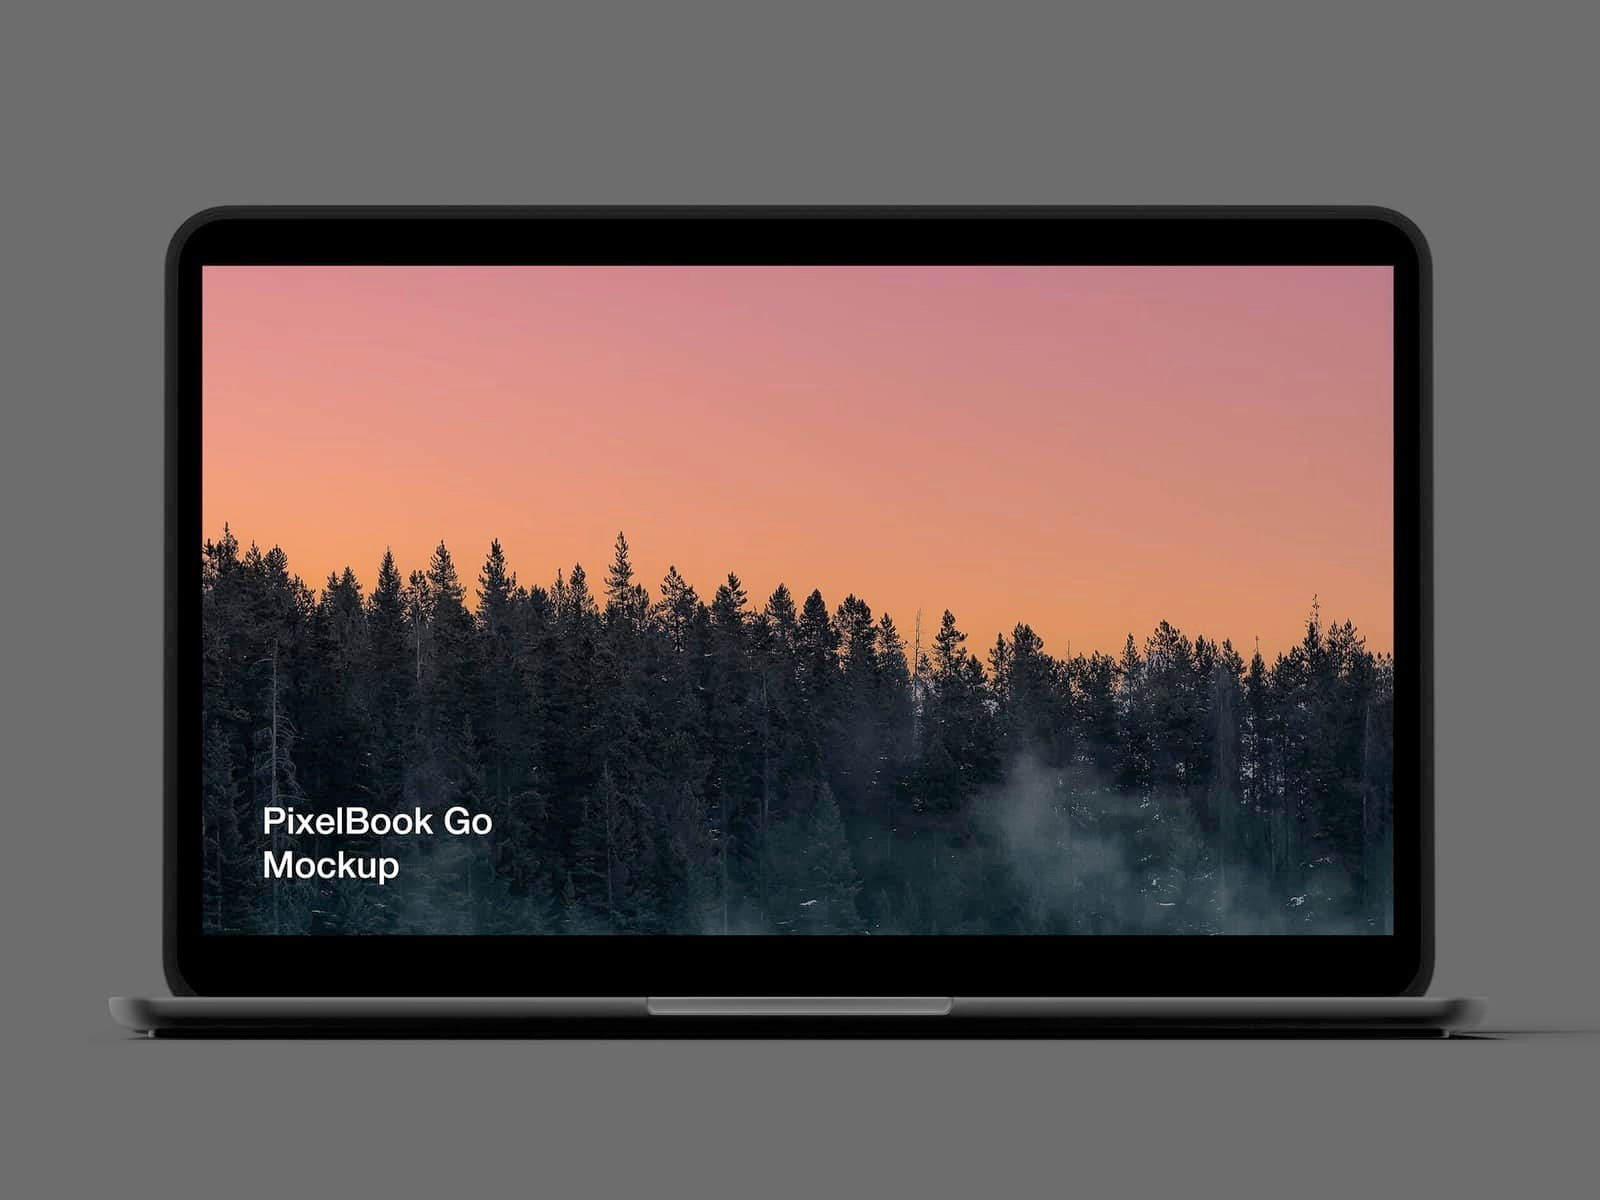 Free Pixel 4 and Pixelbook Go Mockup - Meet high resolution PixelBook Go and Pixel XL 4 mockups in black color.